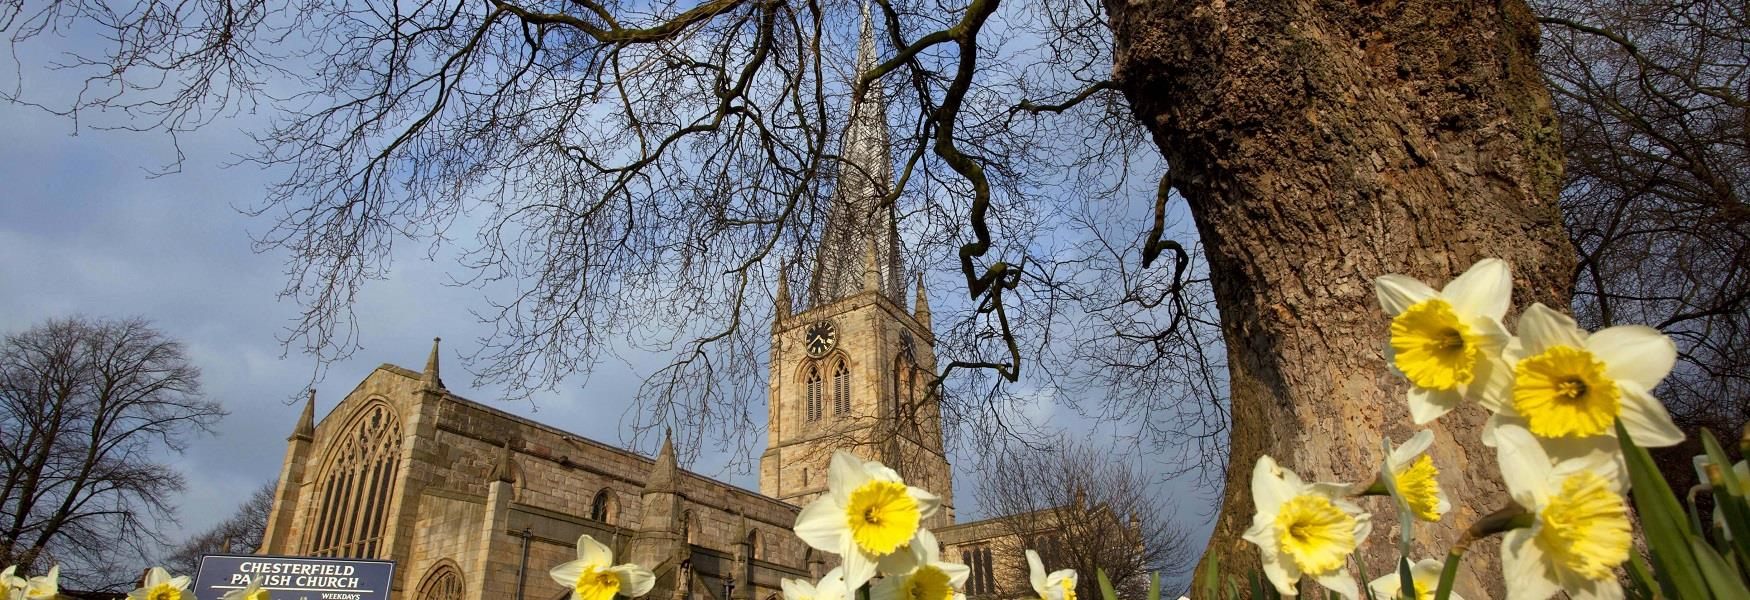 Crooked Spire, Chesterfield in spring with daffodils flowering